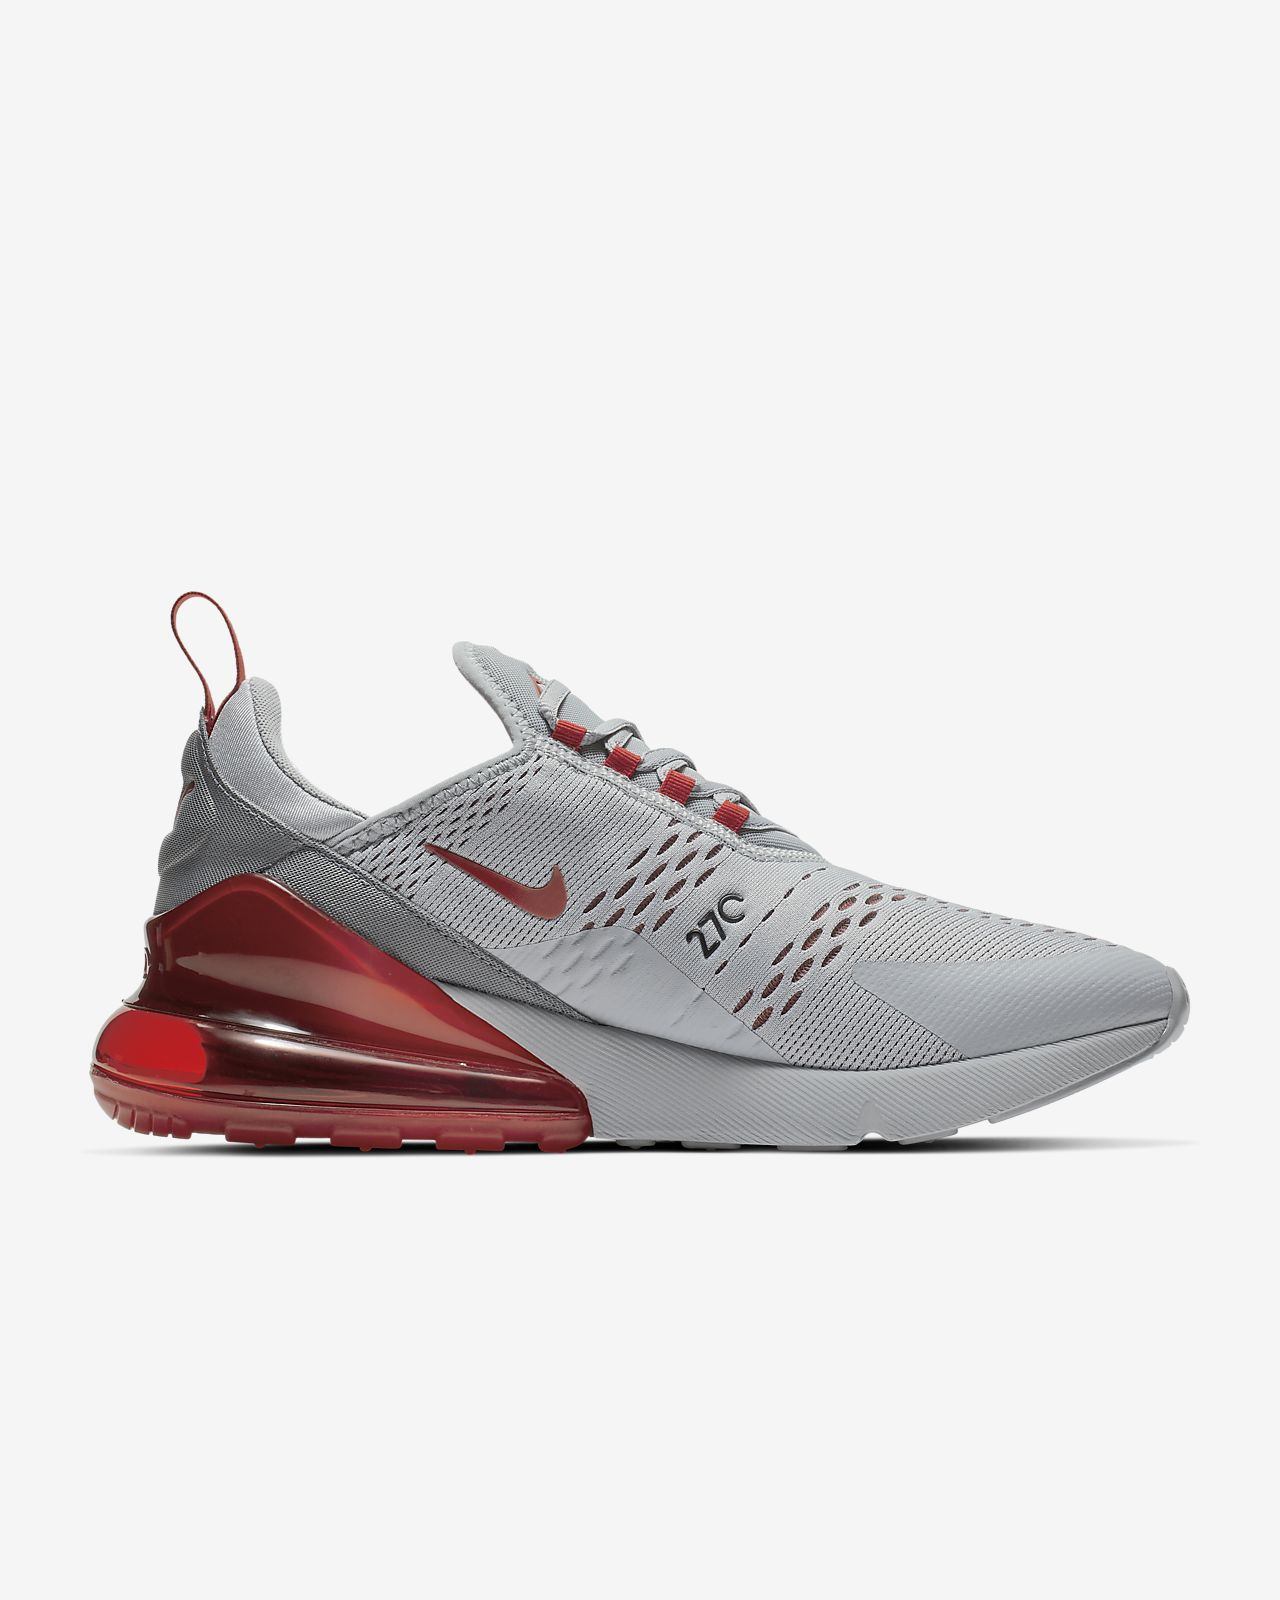 lowest price 0c285 6f7aa ... Nike Air Max 270 Men s Shoe